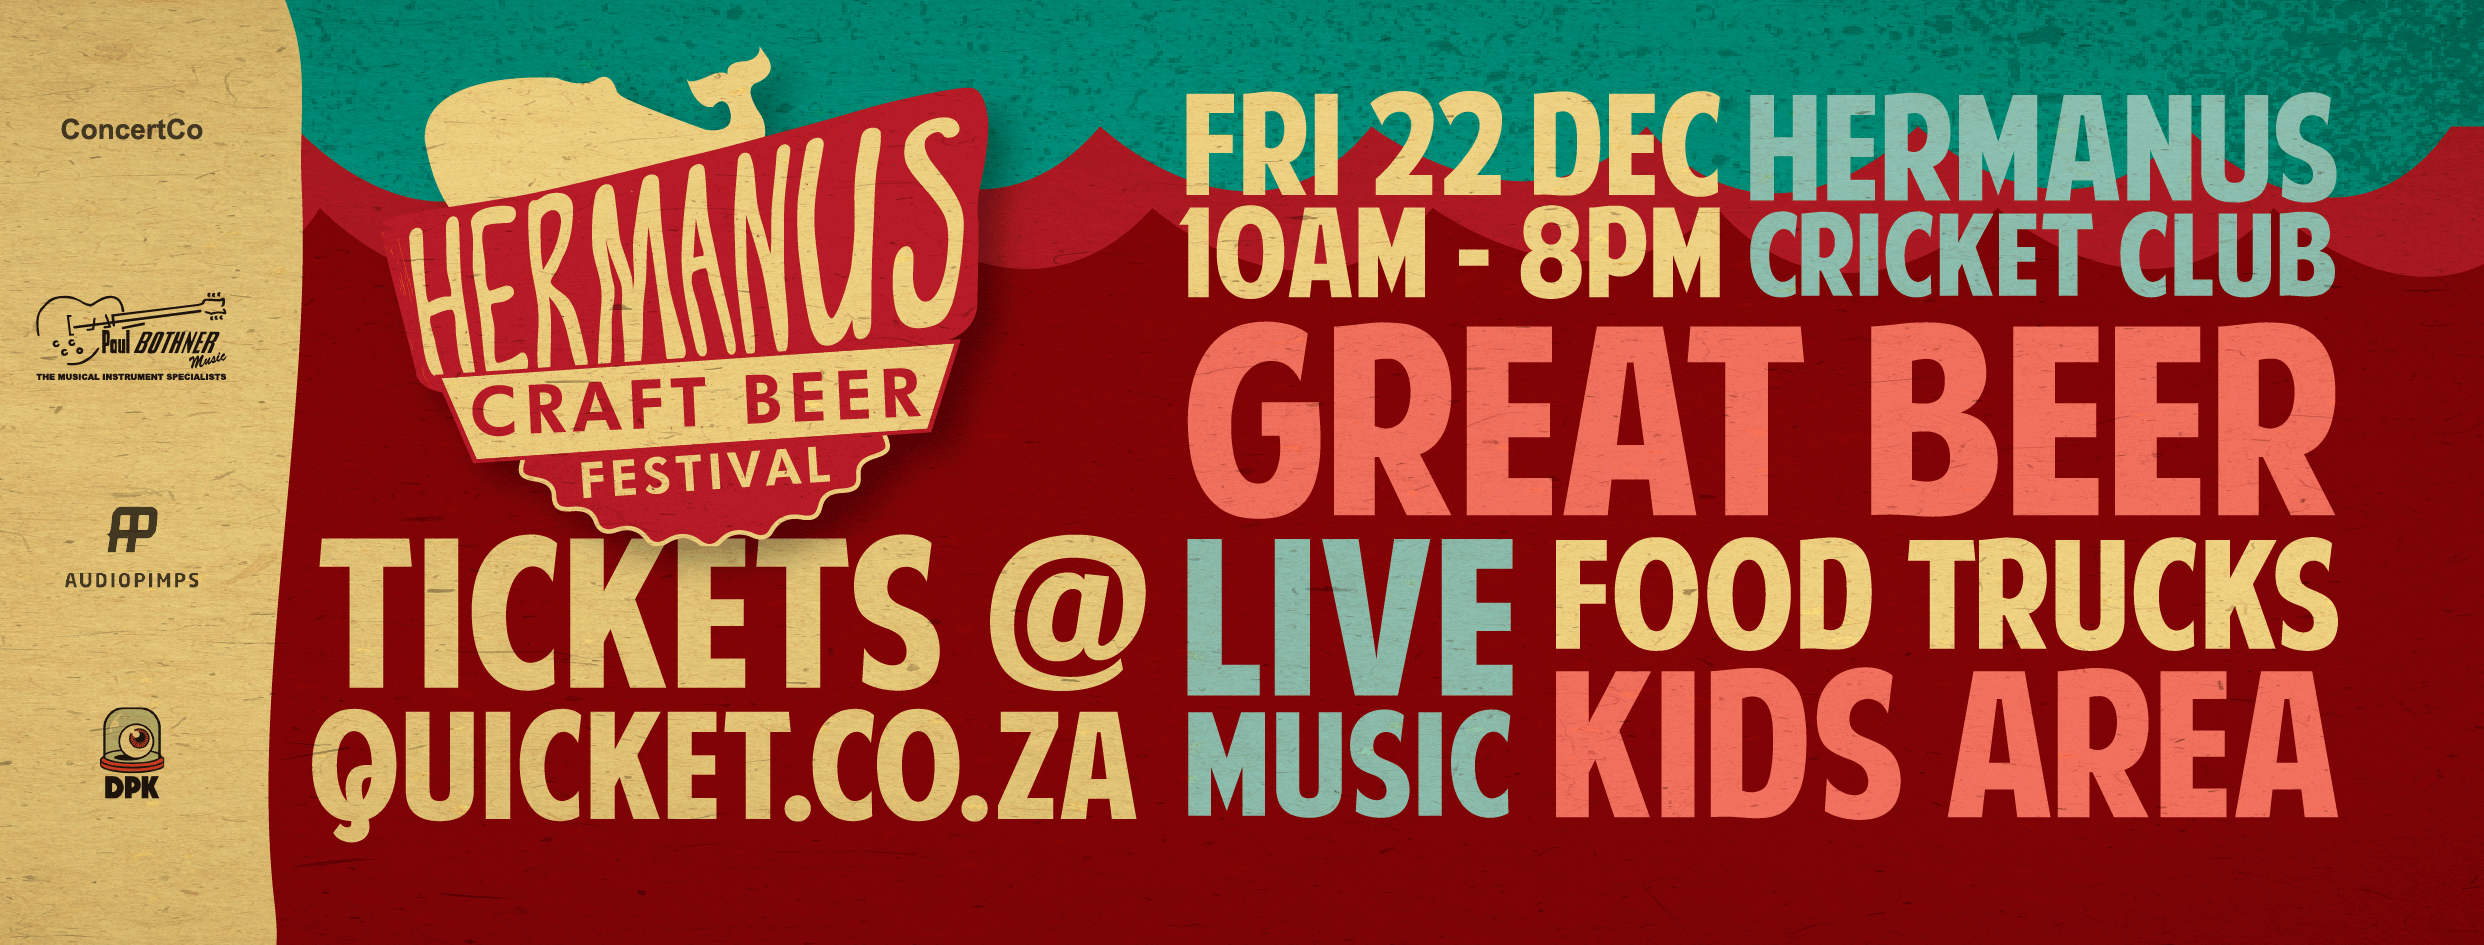 GIVEAWAY: Hermanus Craft Beer Festival tickets